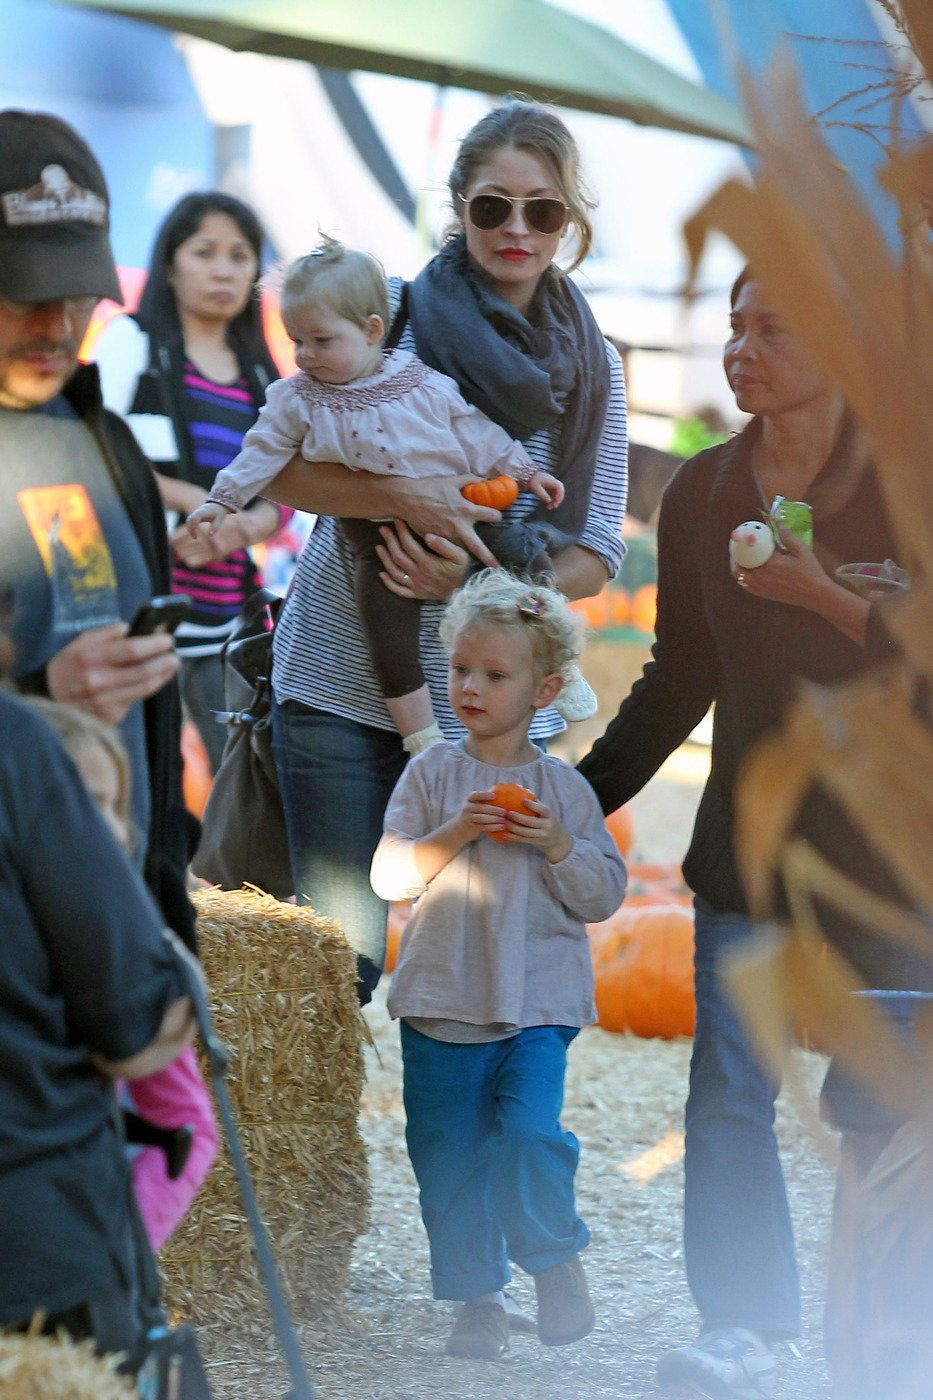 Eric Dane's wife took their daughters, Billie and Georgia, to Mr. Bones Pumpkin Patch for some Halloween fun in Los Angeles,